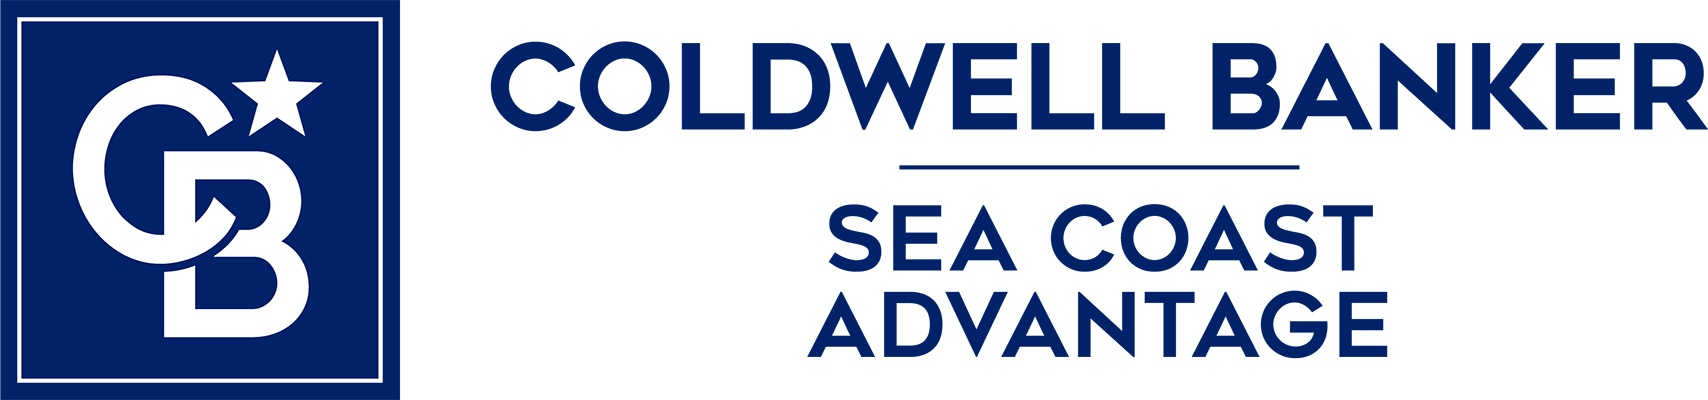 Logan Sullivan - Coldwell Banker Sea Coast Advantage Realty